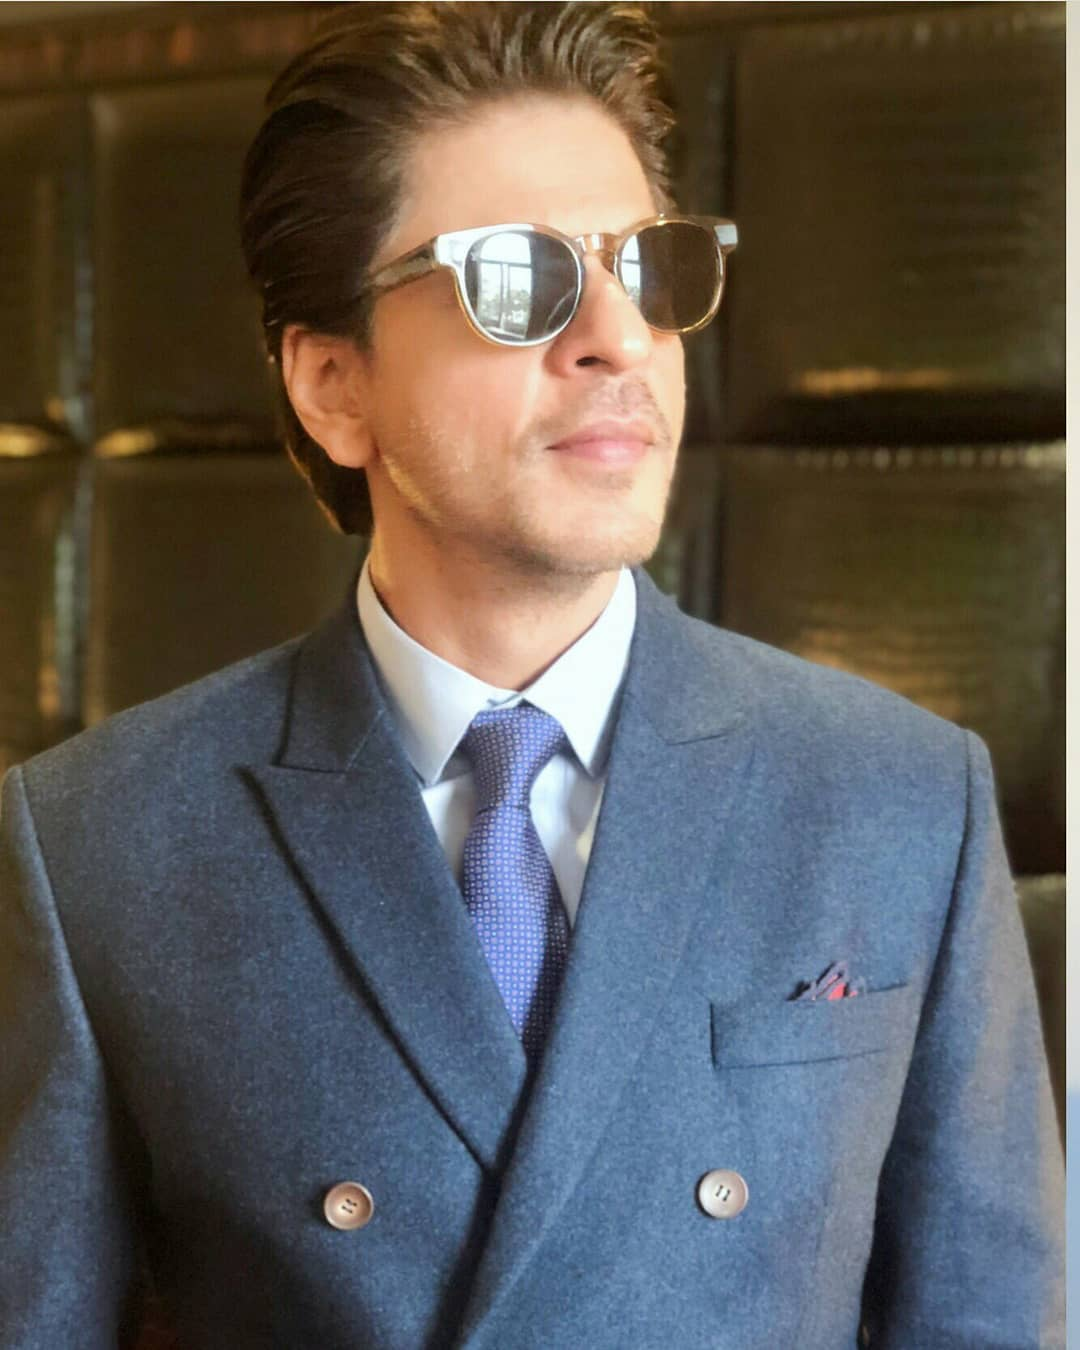 shahrukh khan in dapper suit 4